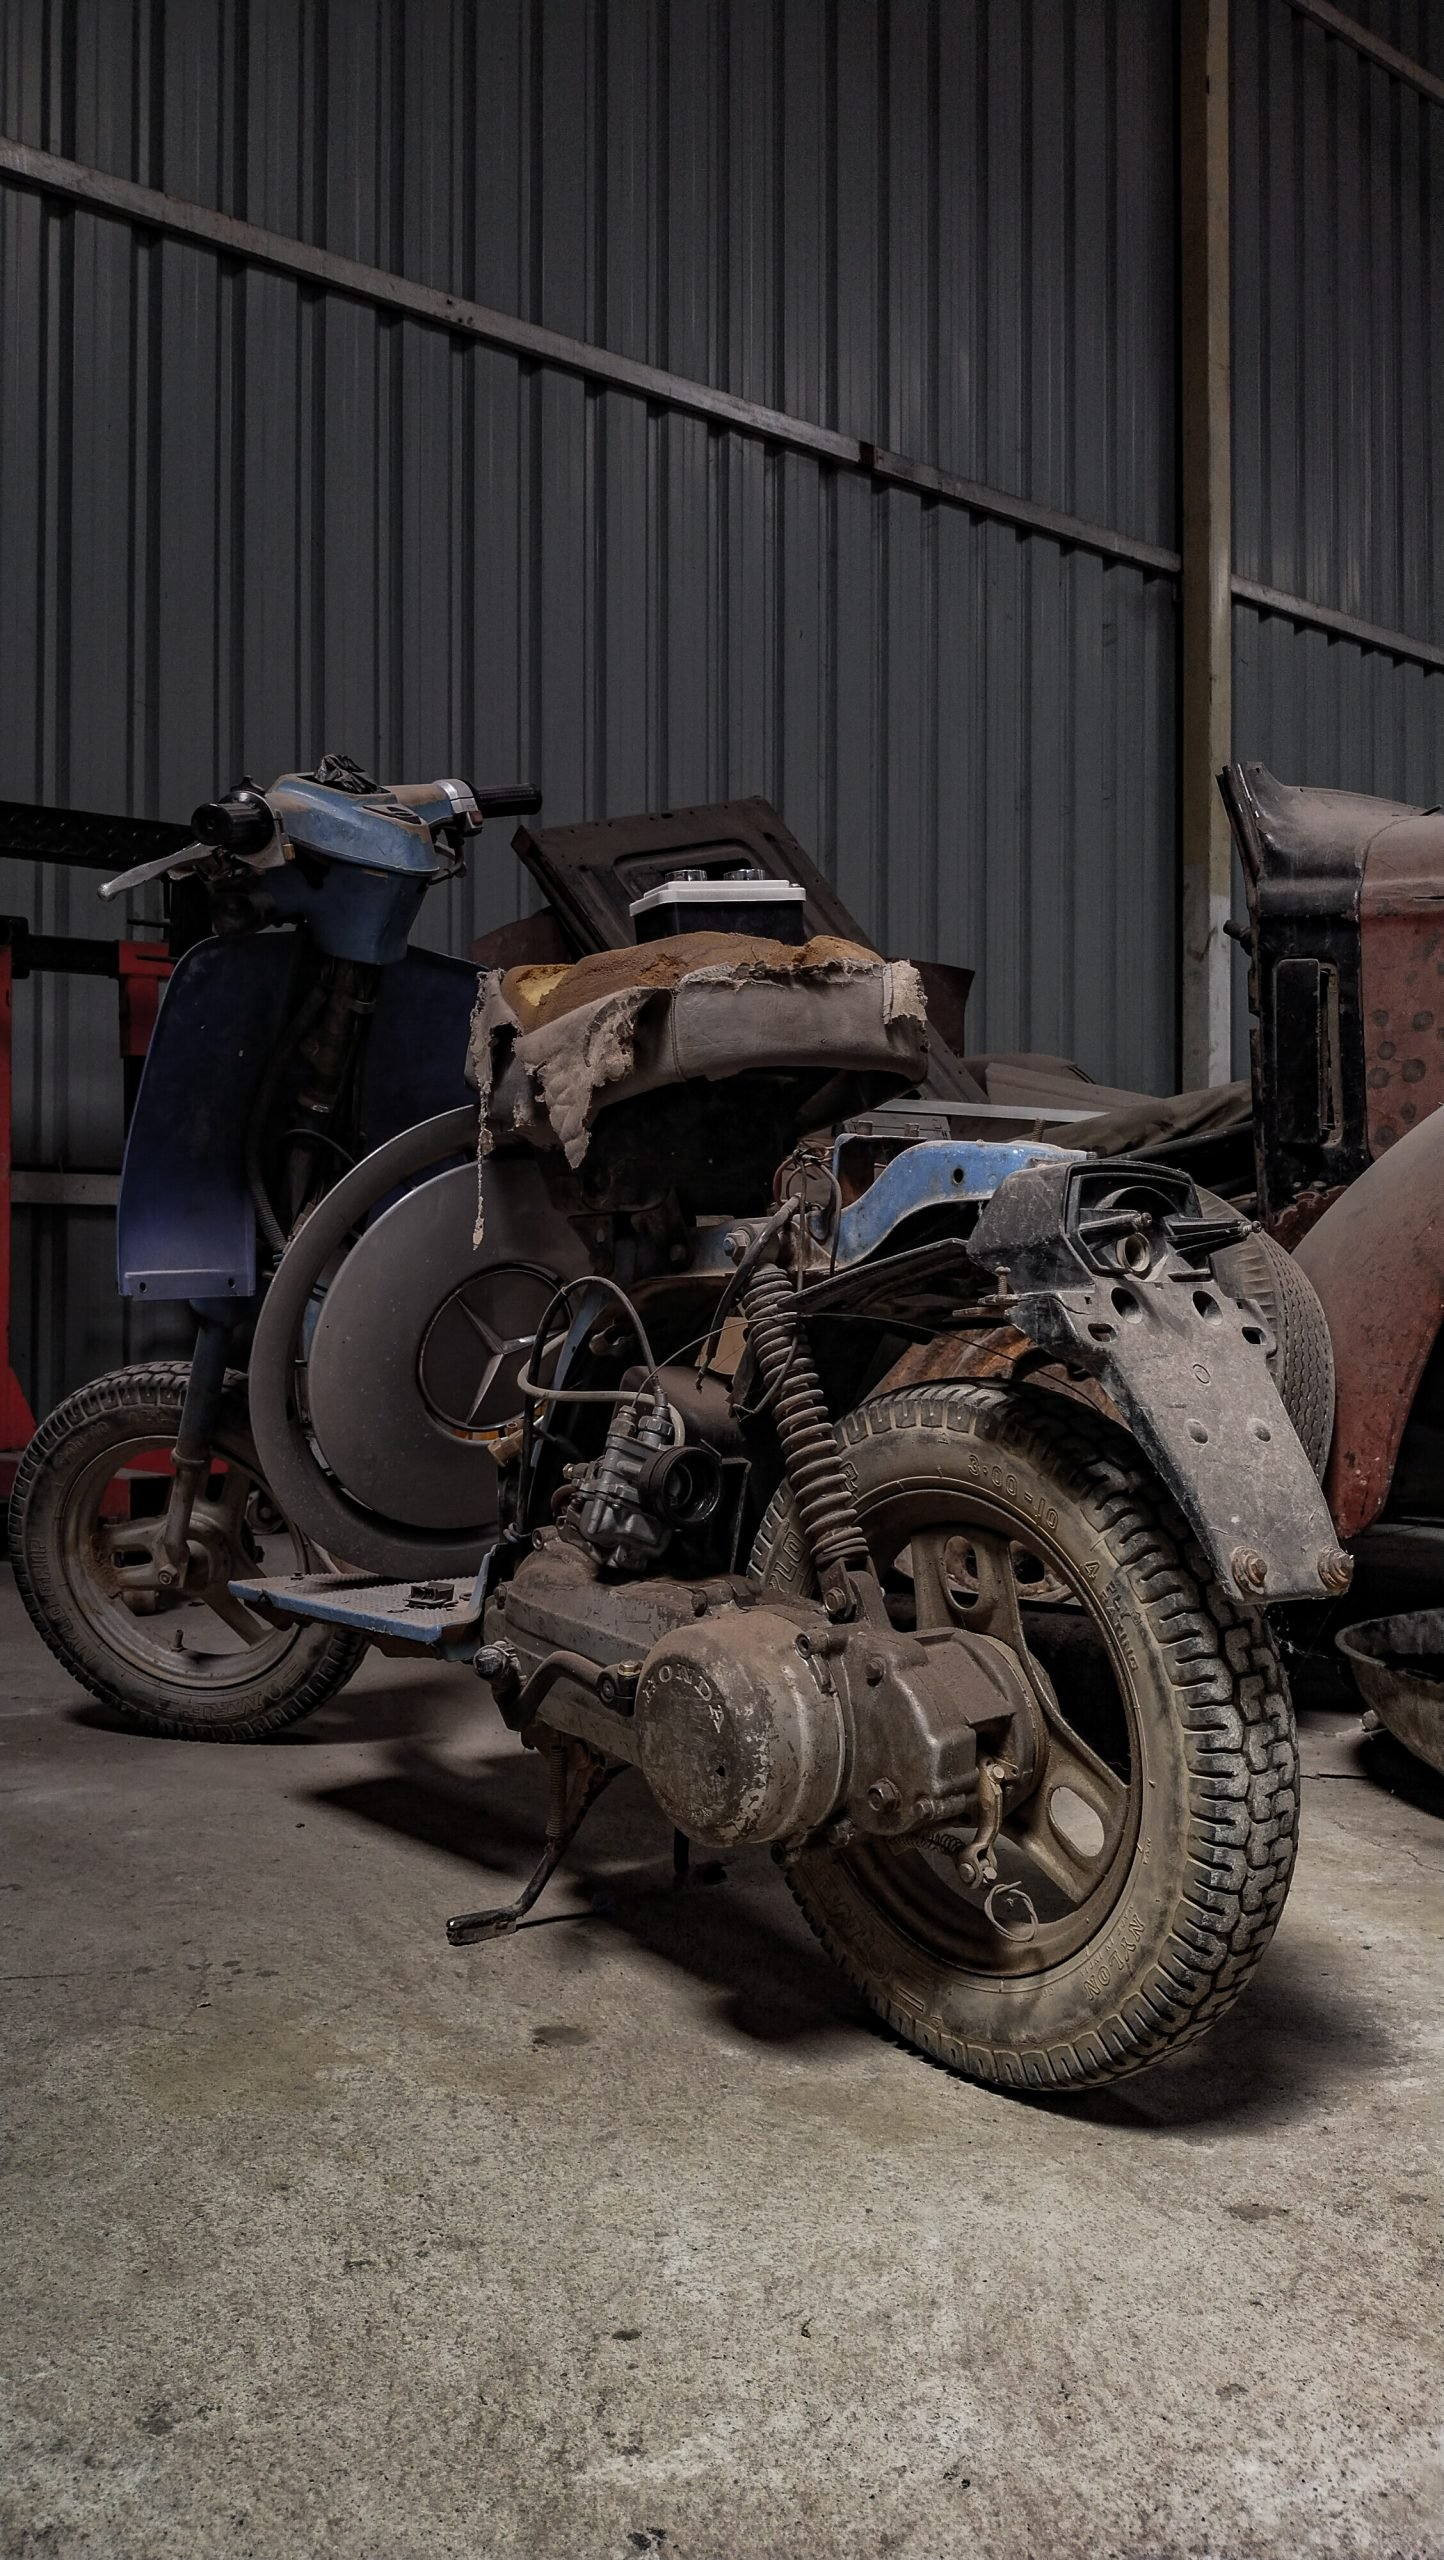 An old motorcycle